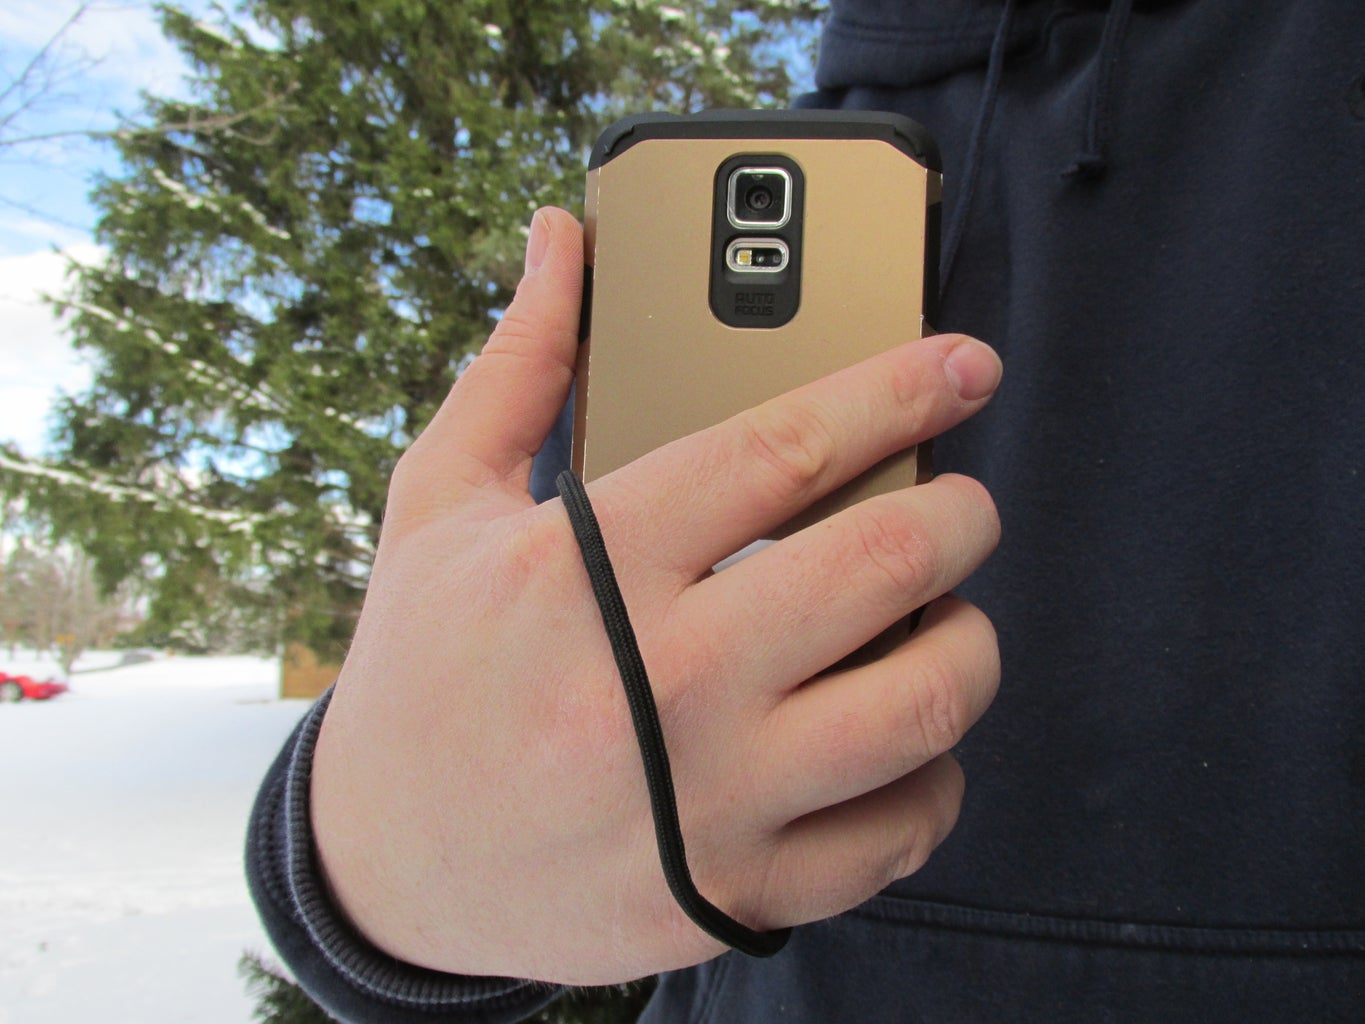 3D Printed Cell Phone Lanyard and Tripod Mount